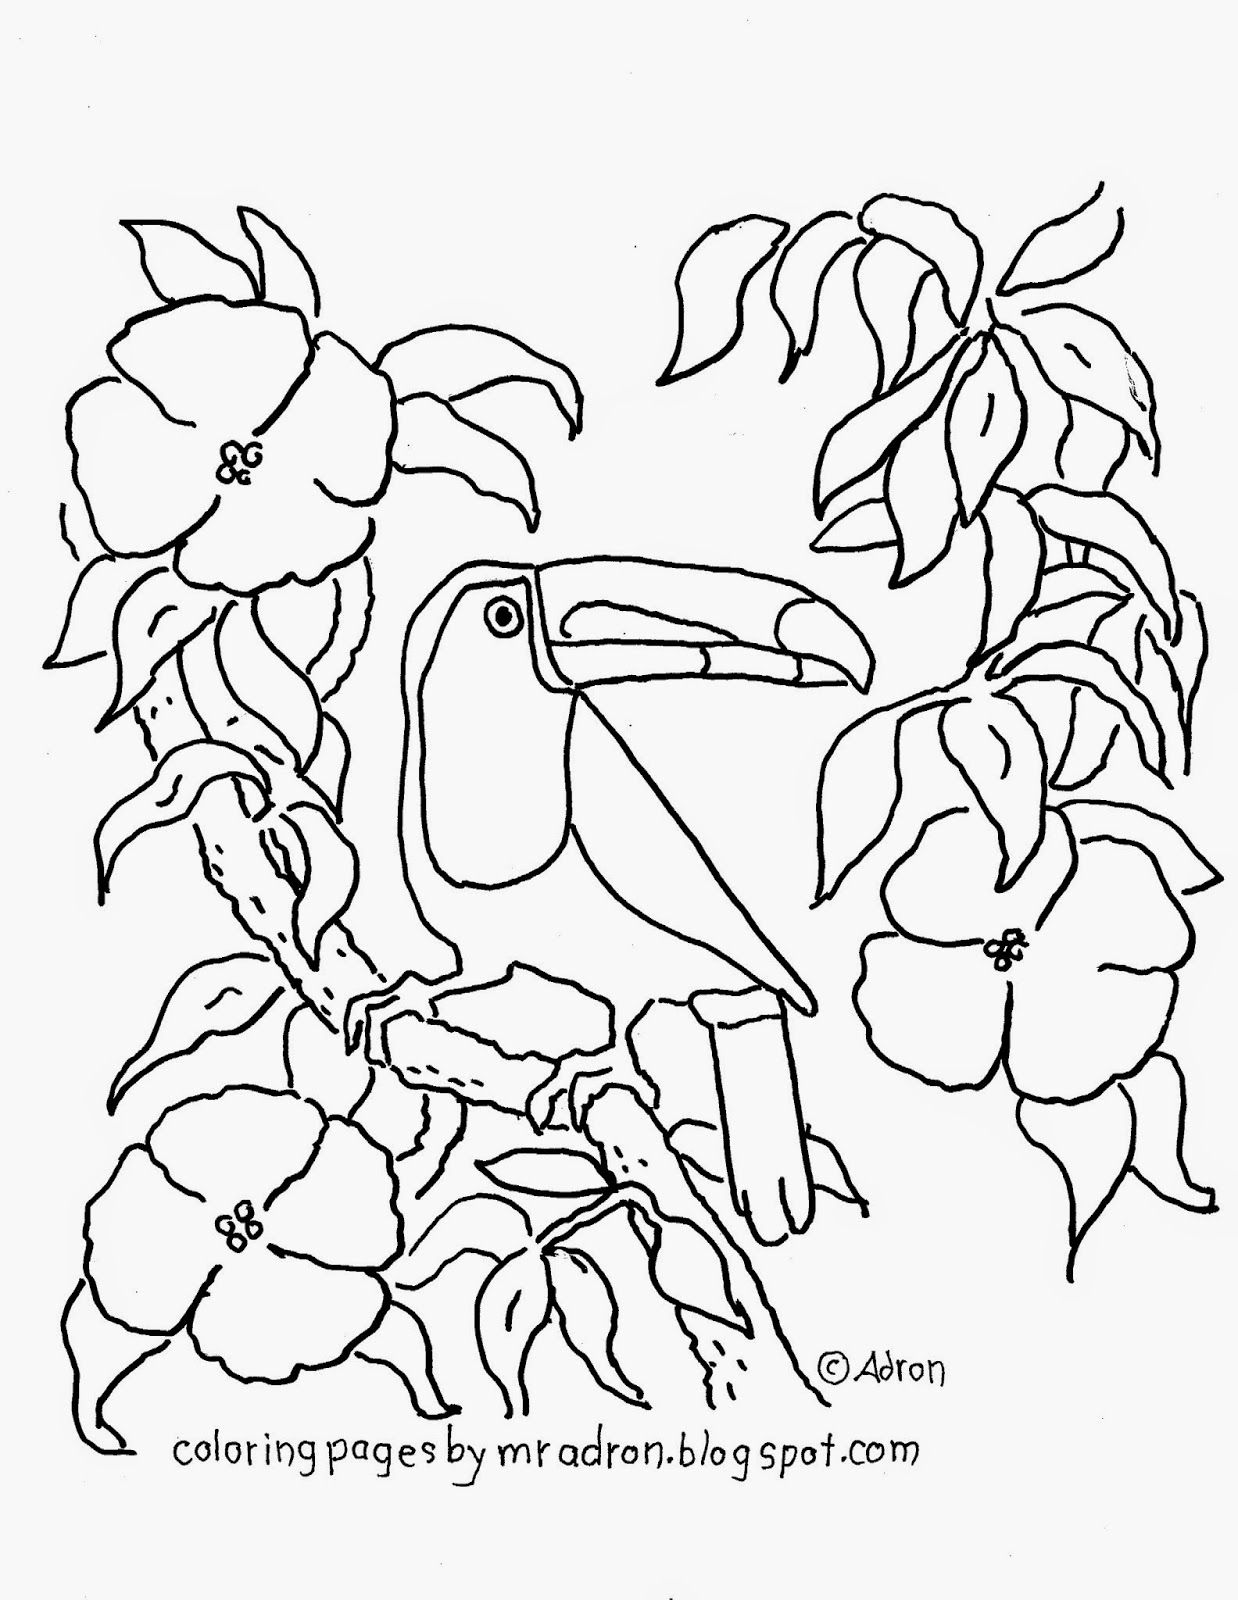 Toucan Coloring Page See More At My Blog Http